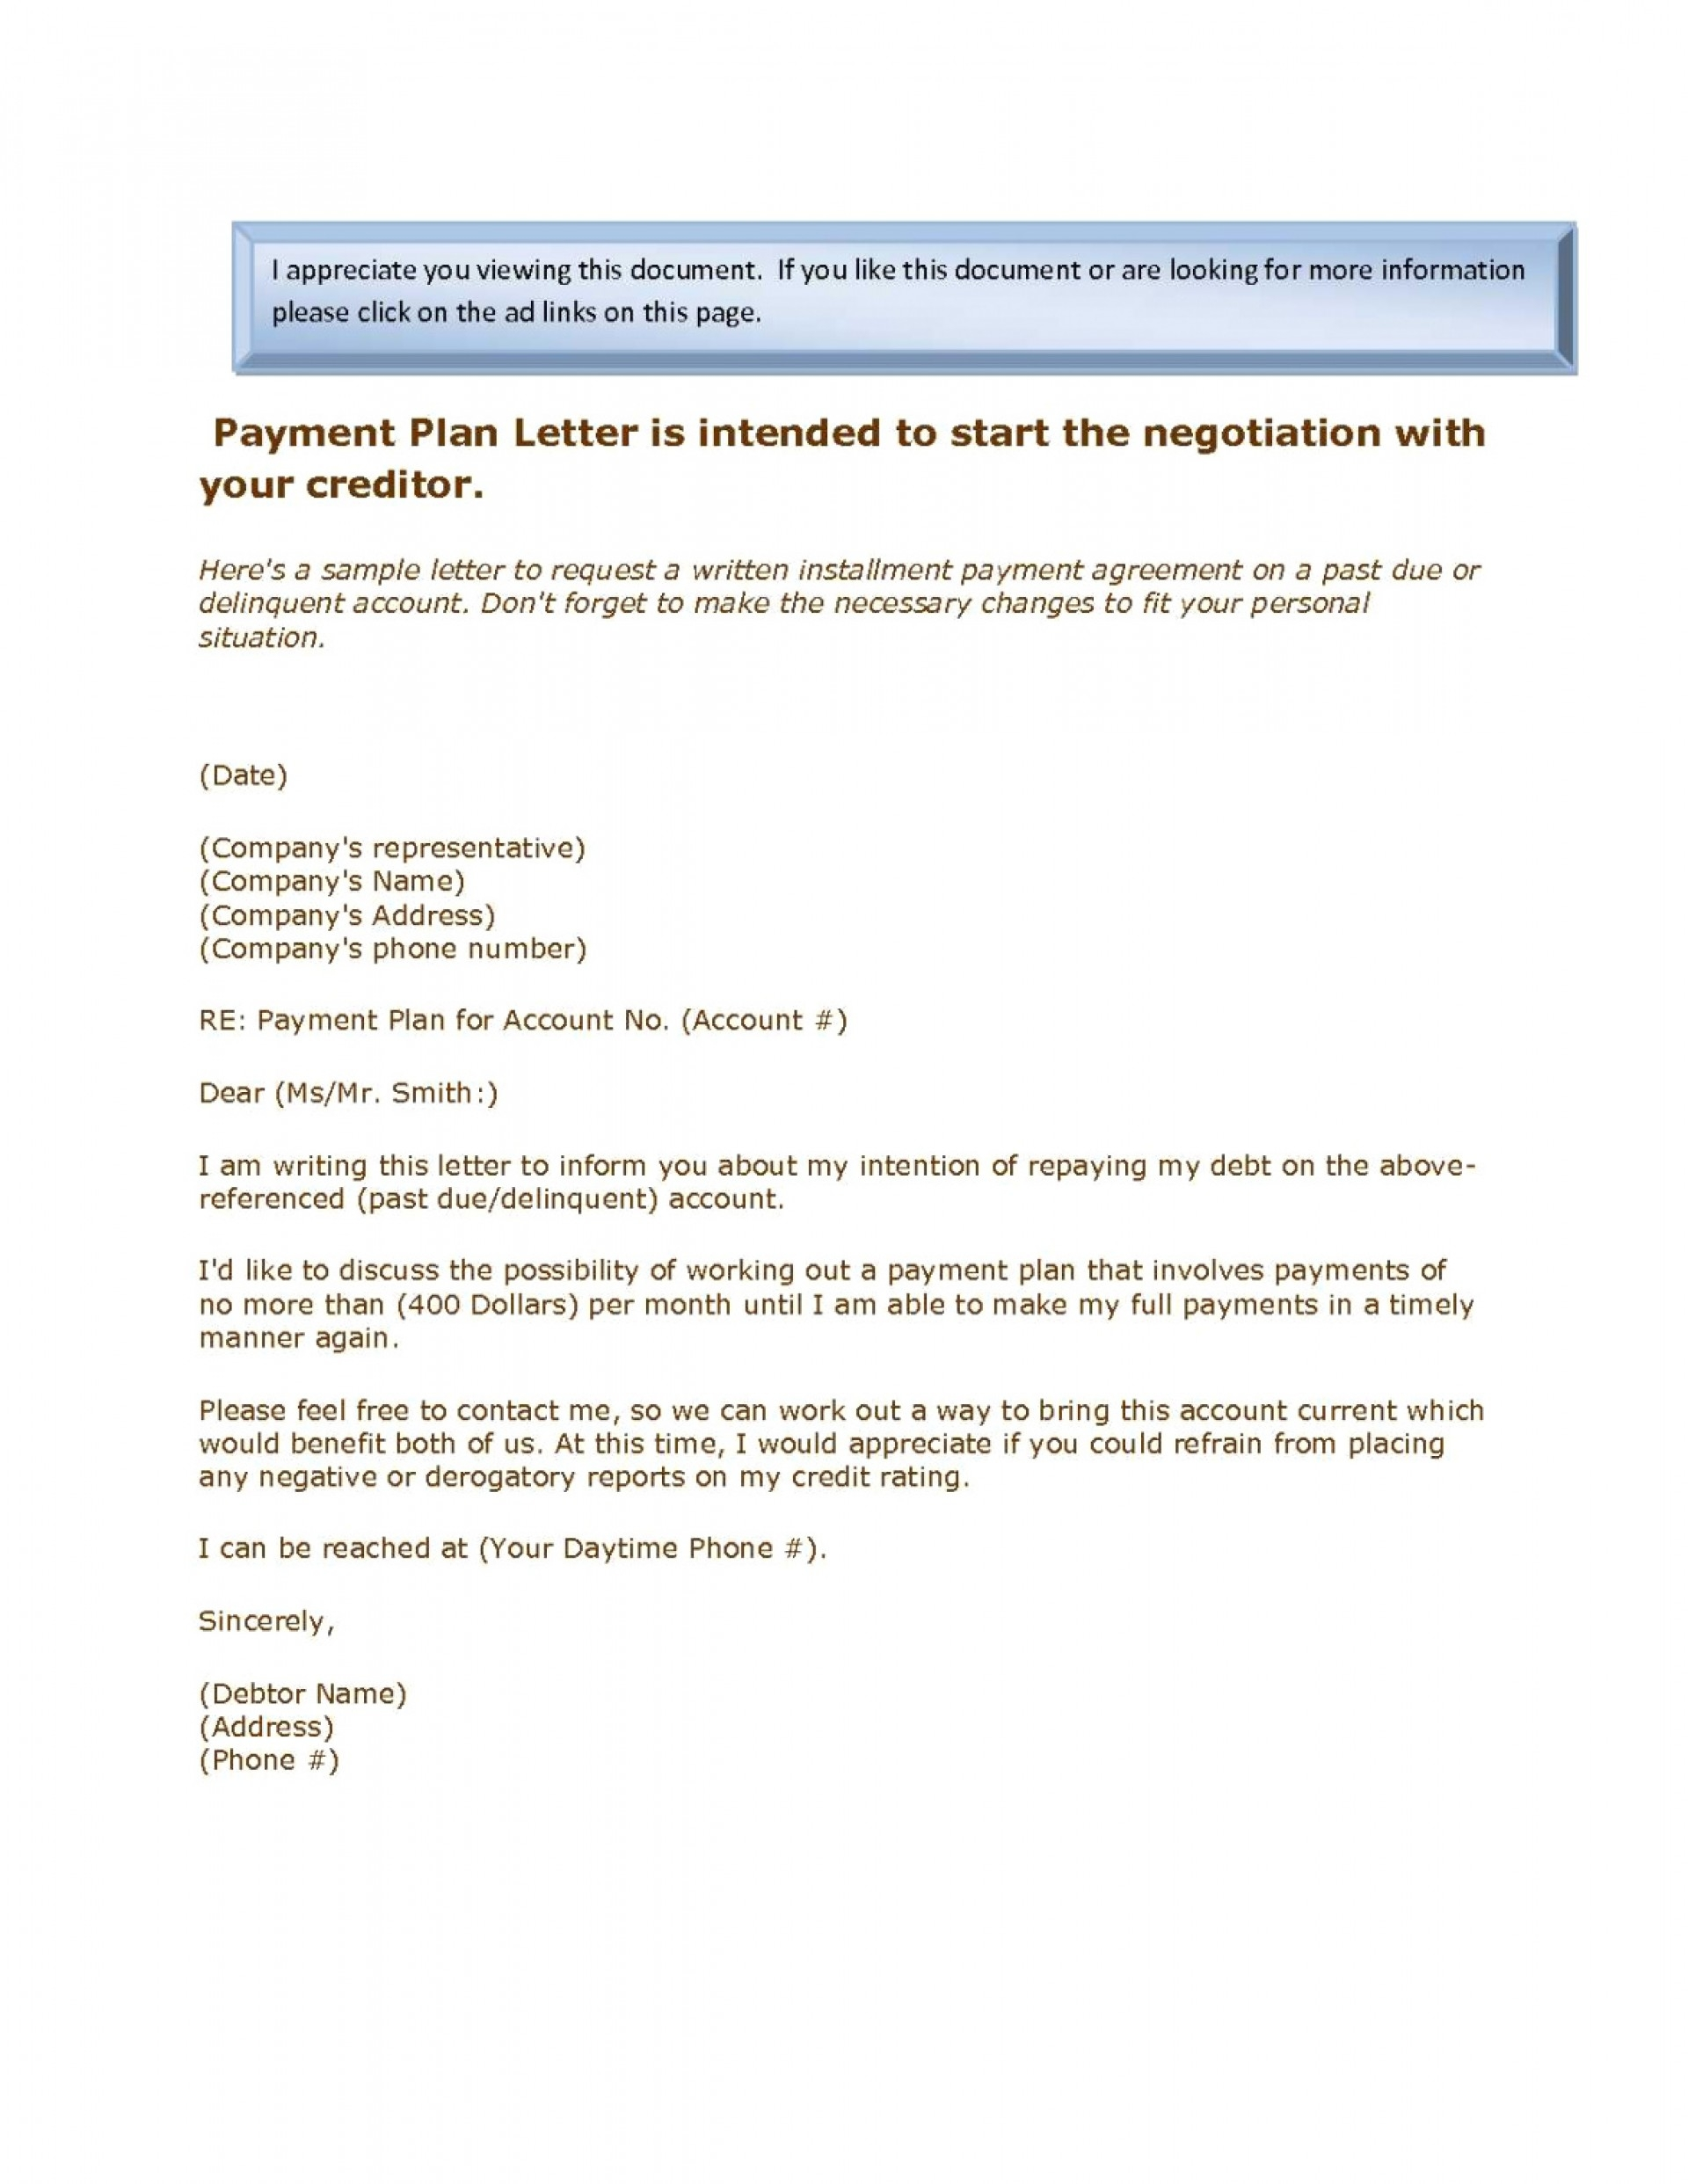 021 installment payment contract template wonderful ideas request letter for the fees pay installment